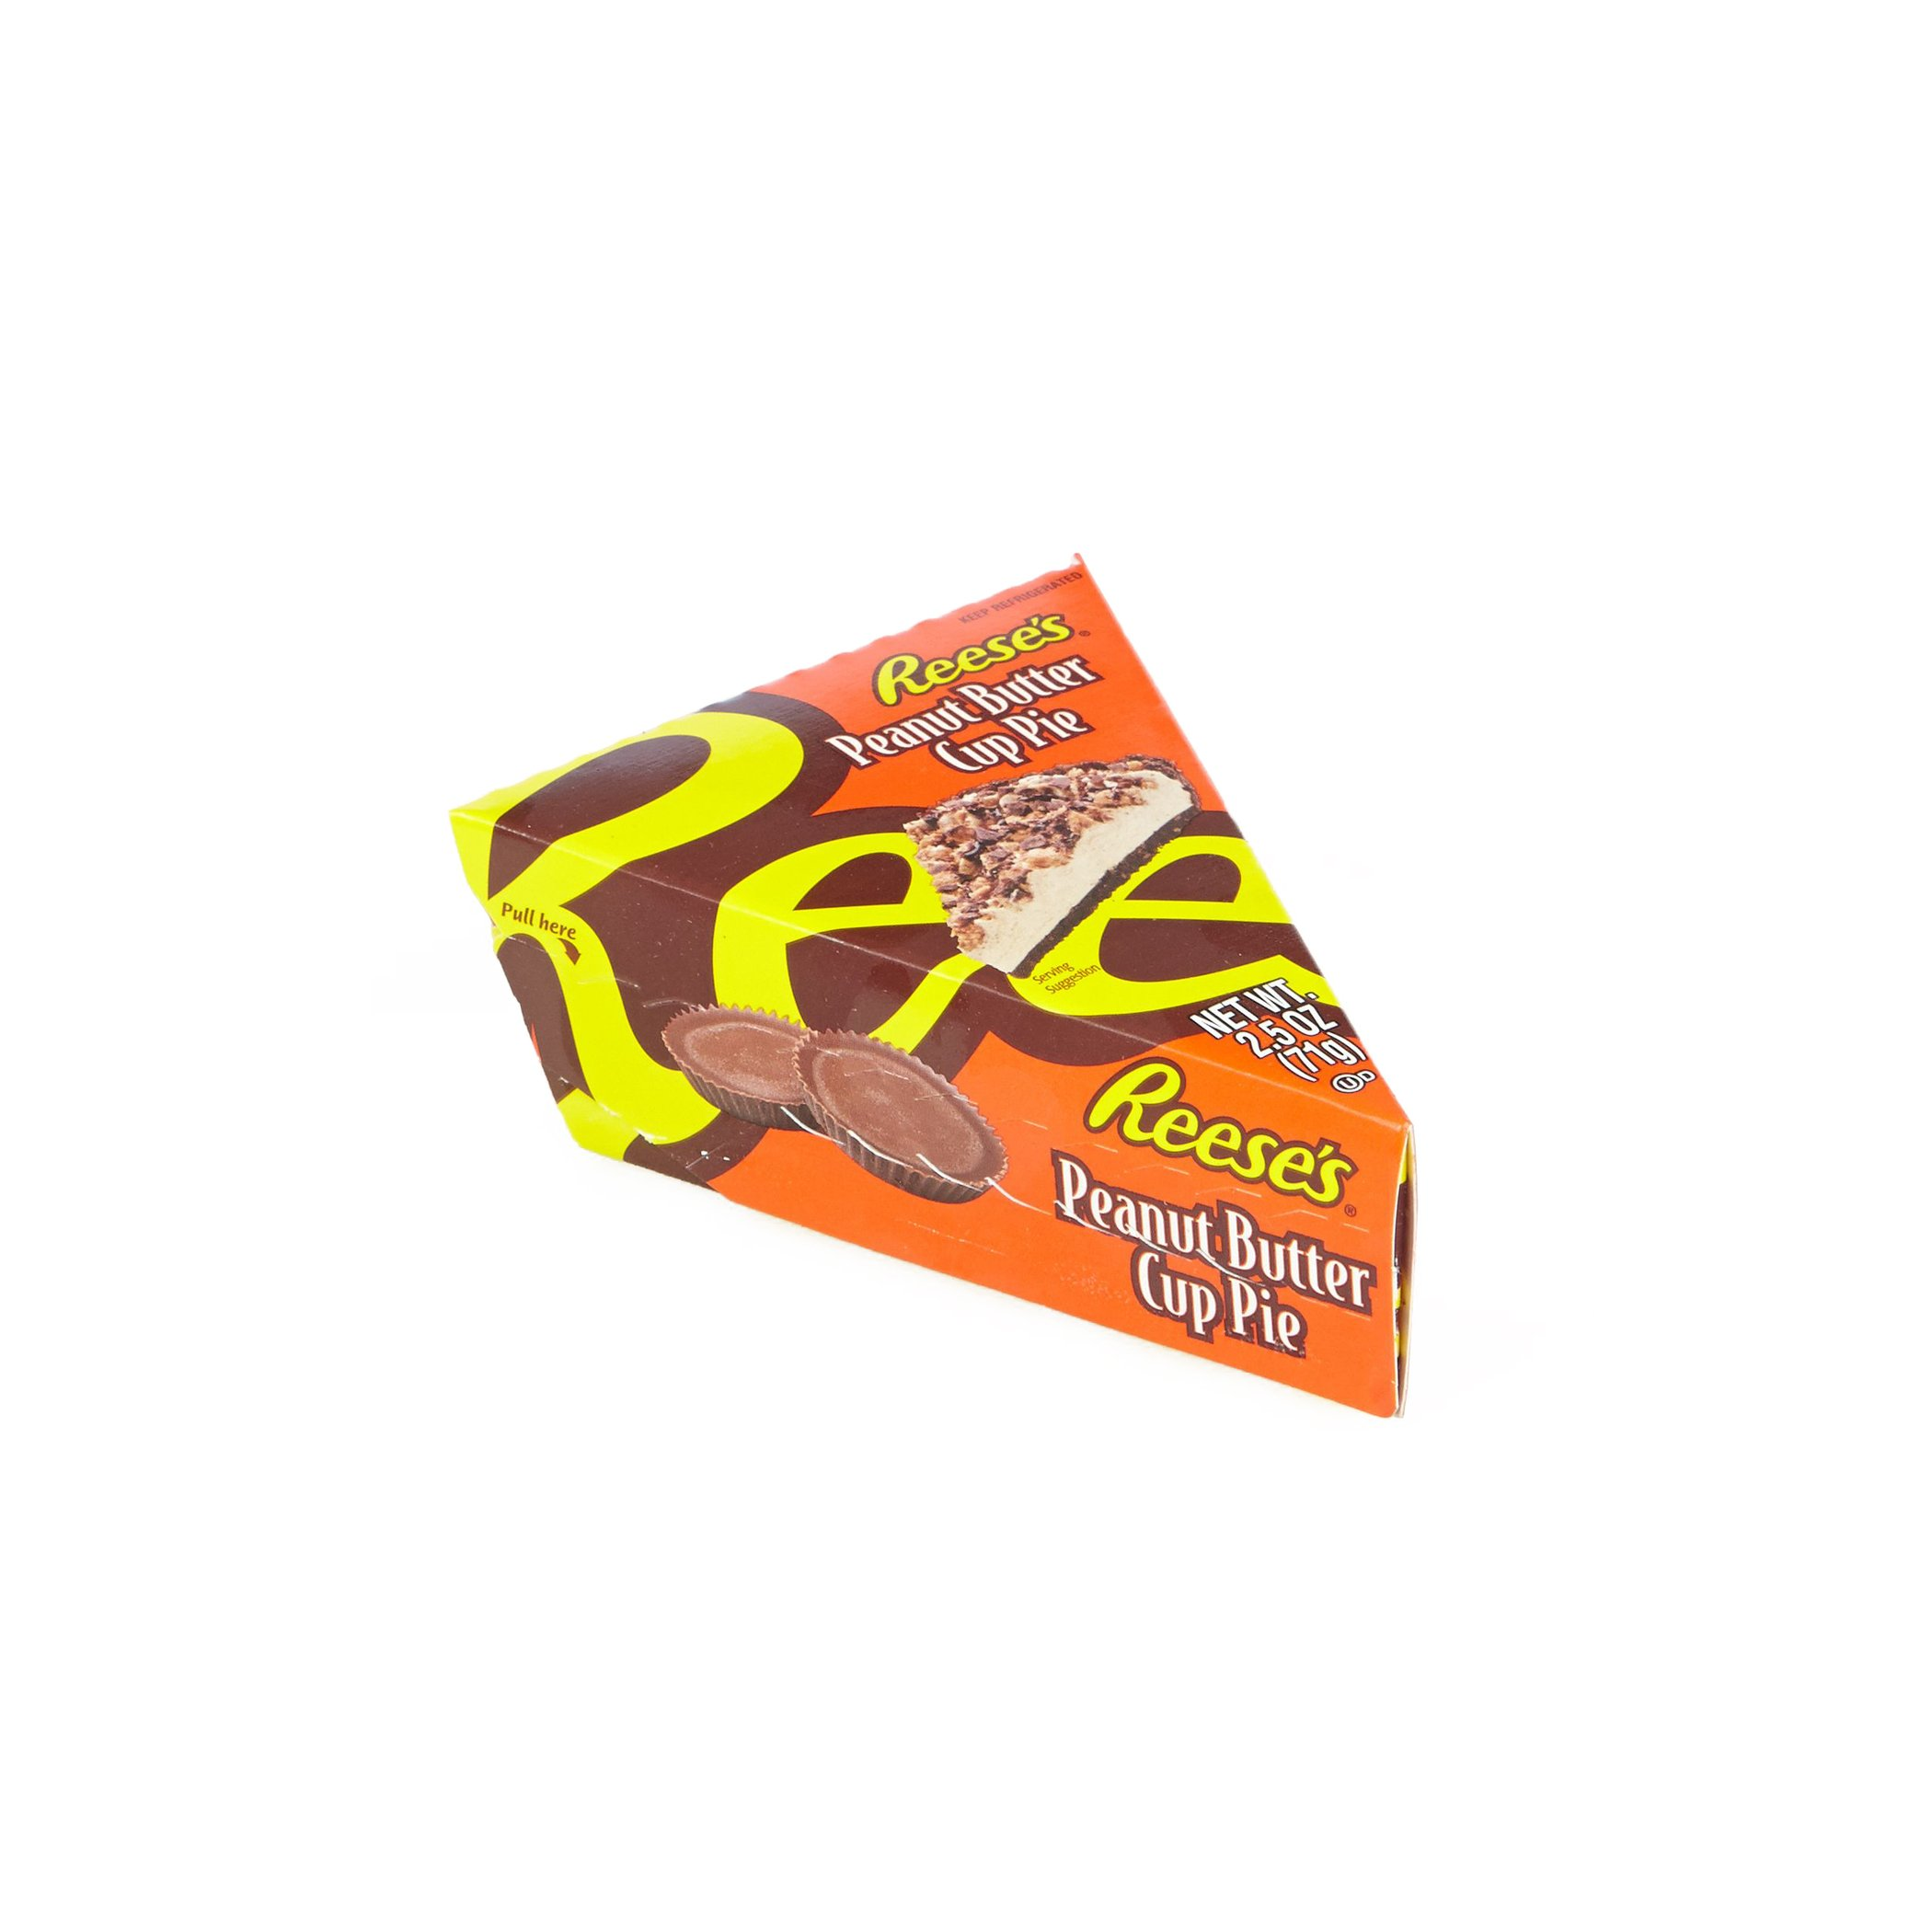 Reese's Peanut Butter Cup Pie Slice, 2.5 oz., (Pack of 24) by Reese's